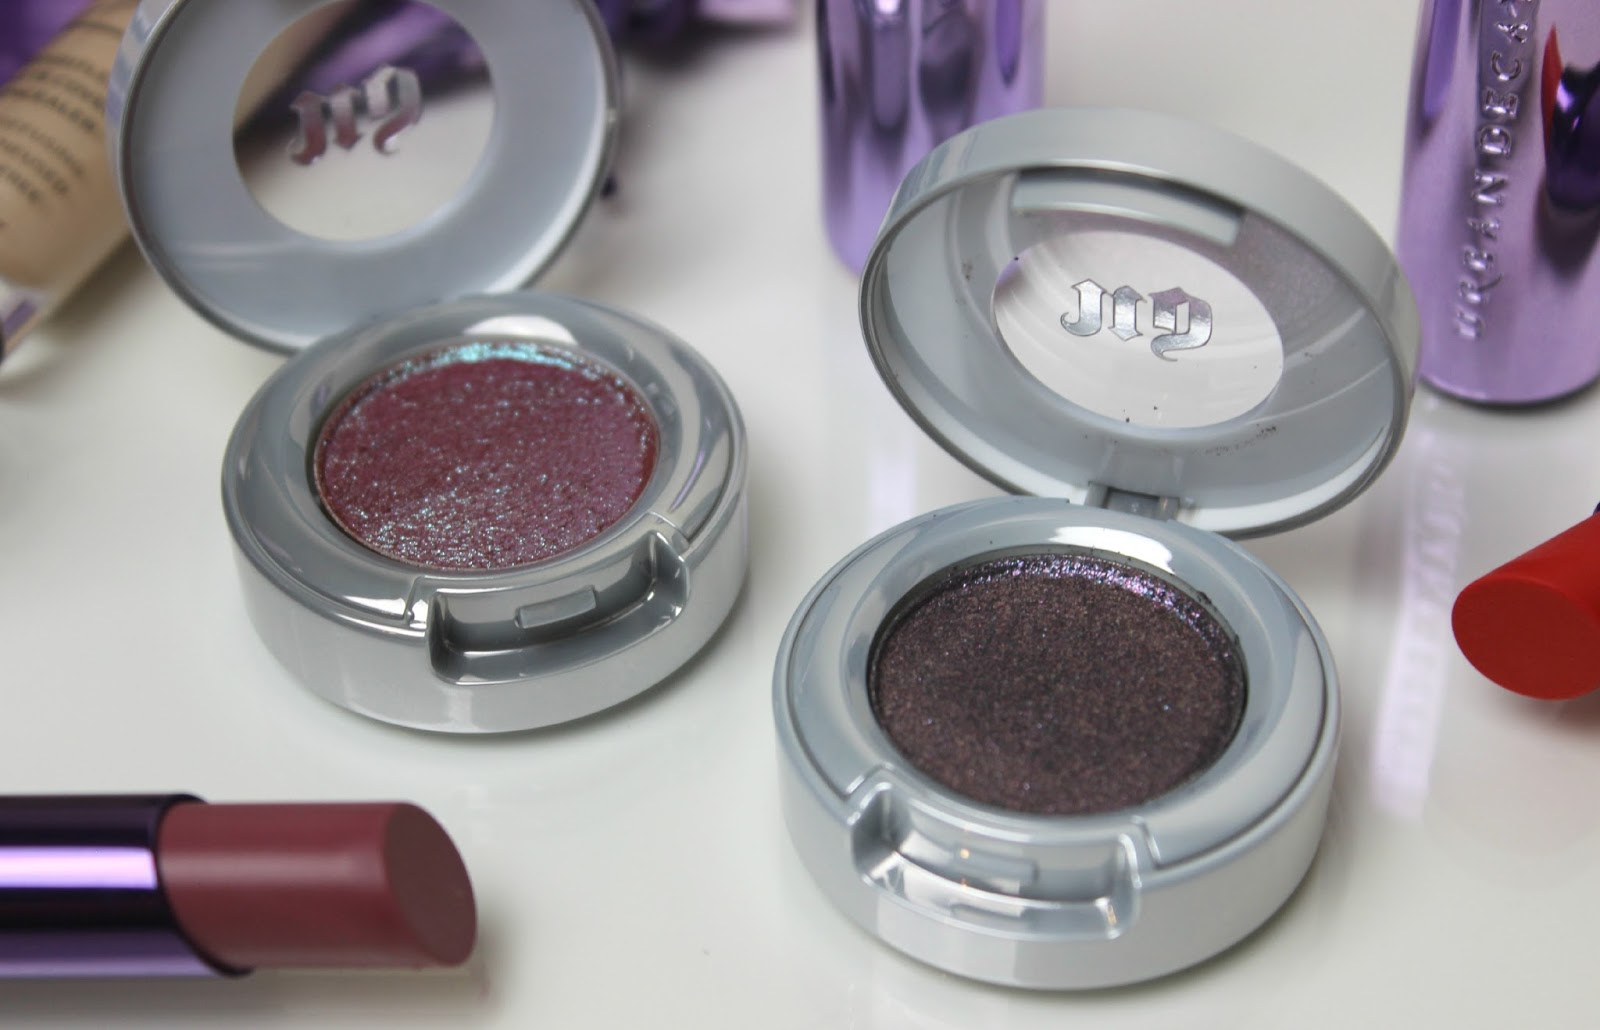 A picture of Urban Decay Moondust Eyeshadows